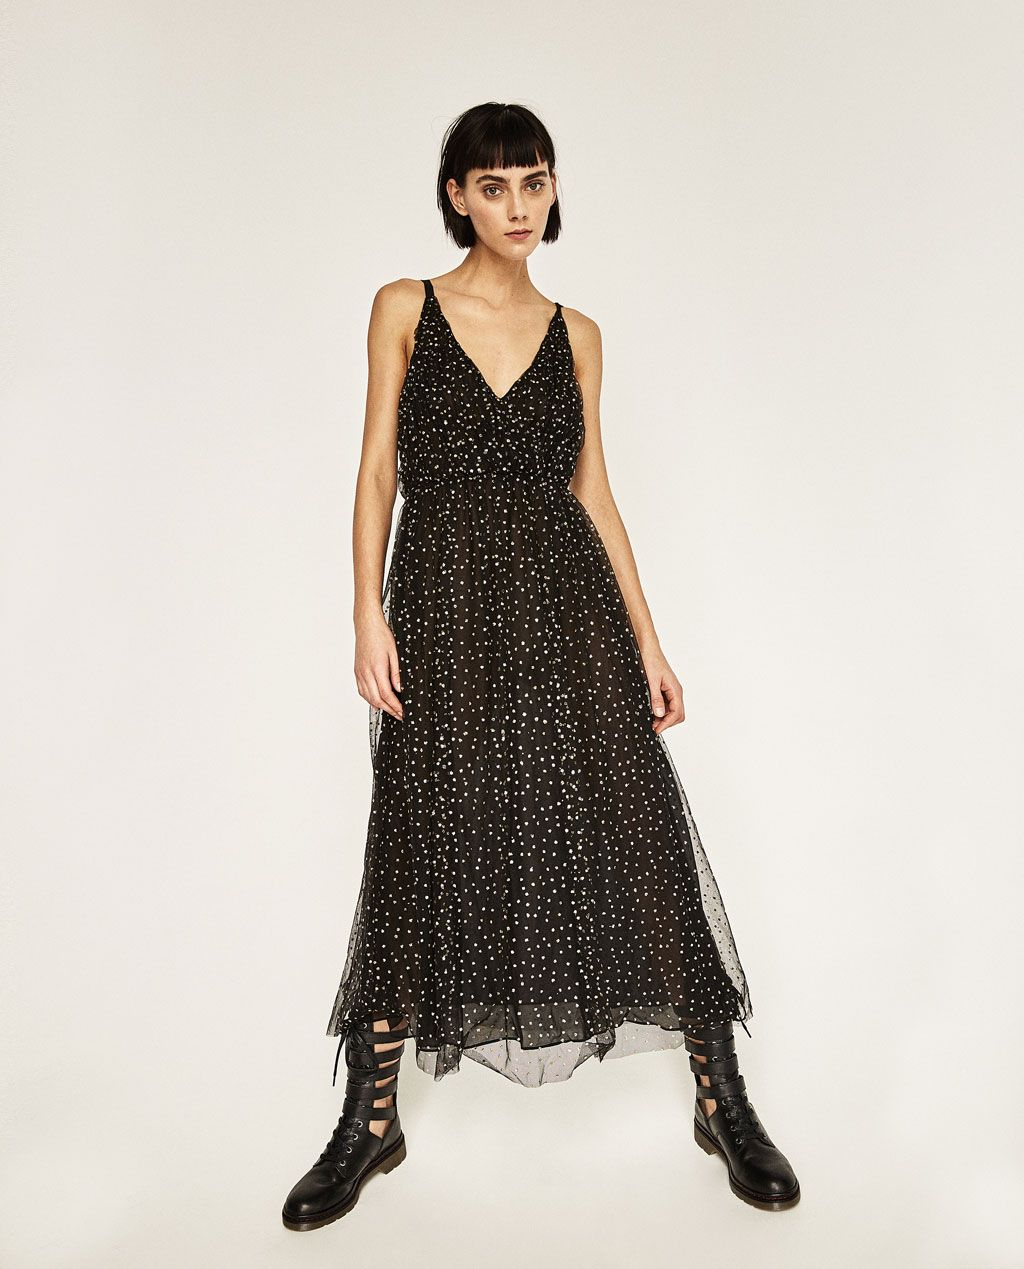 LONG TULLE DRESS WITH POLKA DOTS | одежда, винтаж | Pinterest